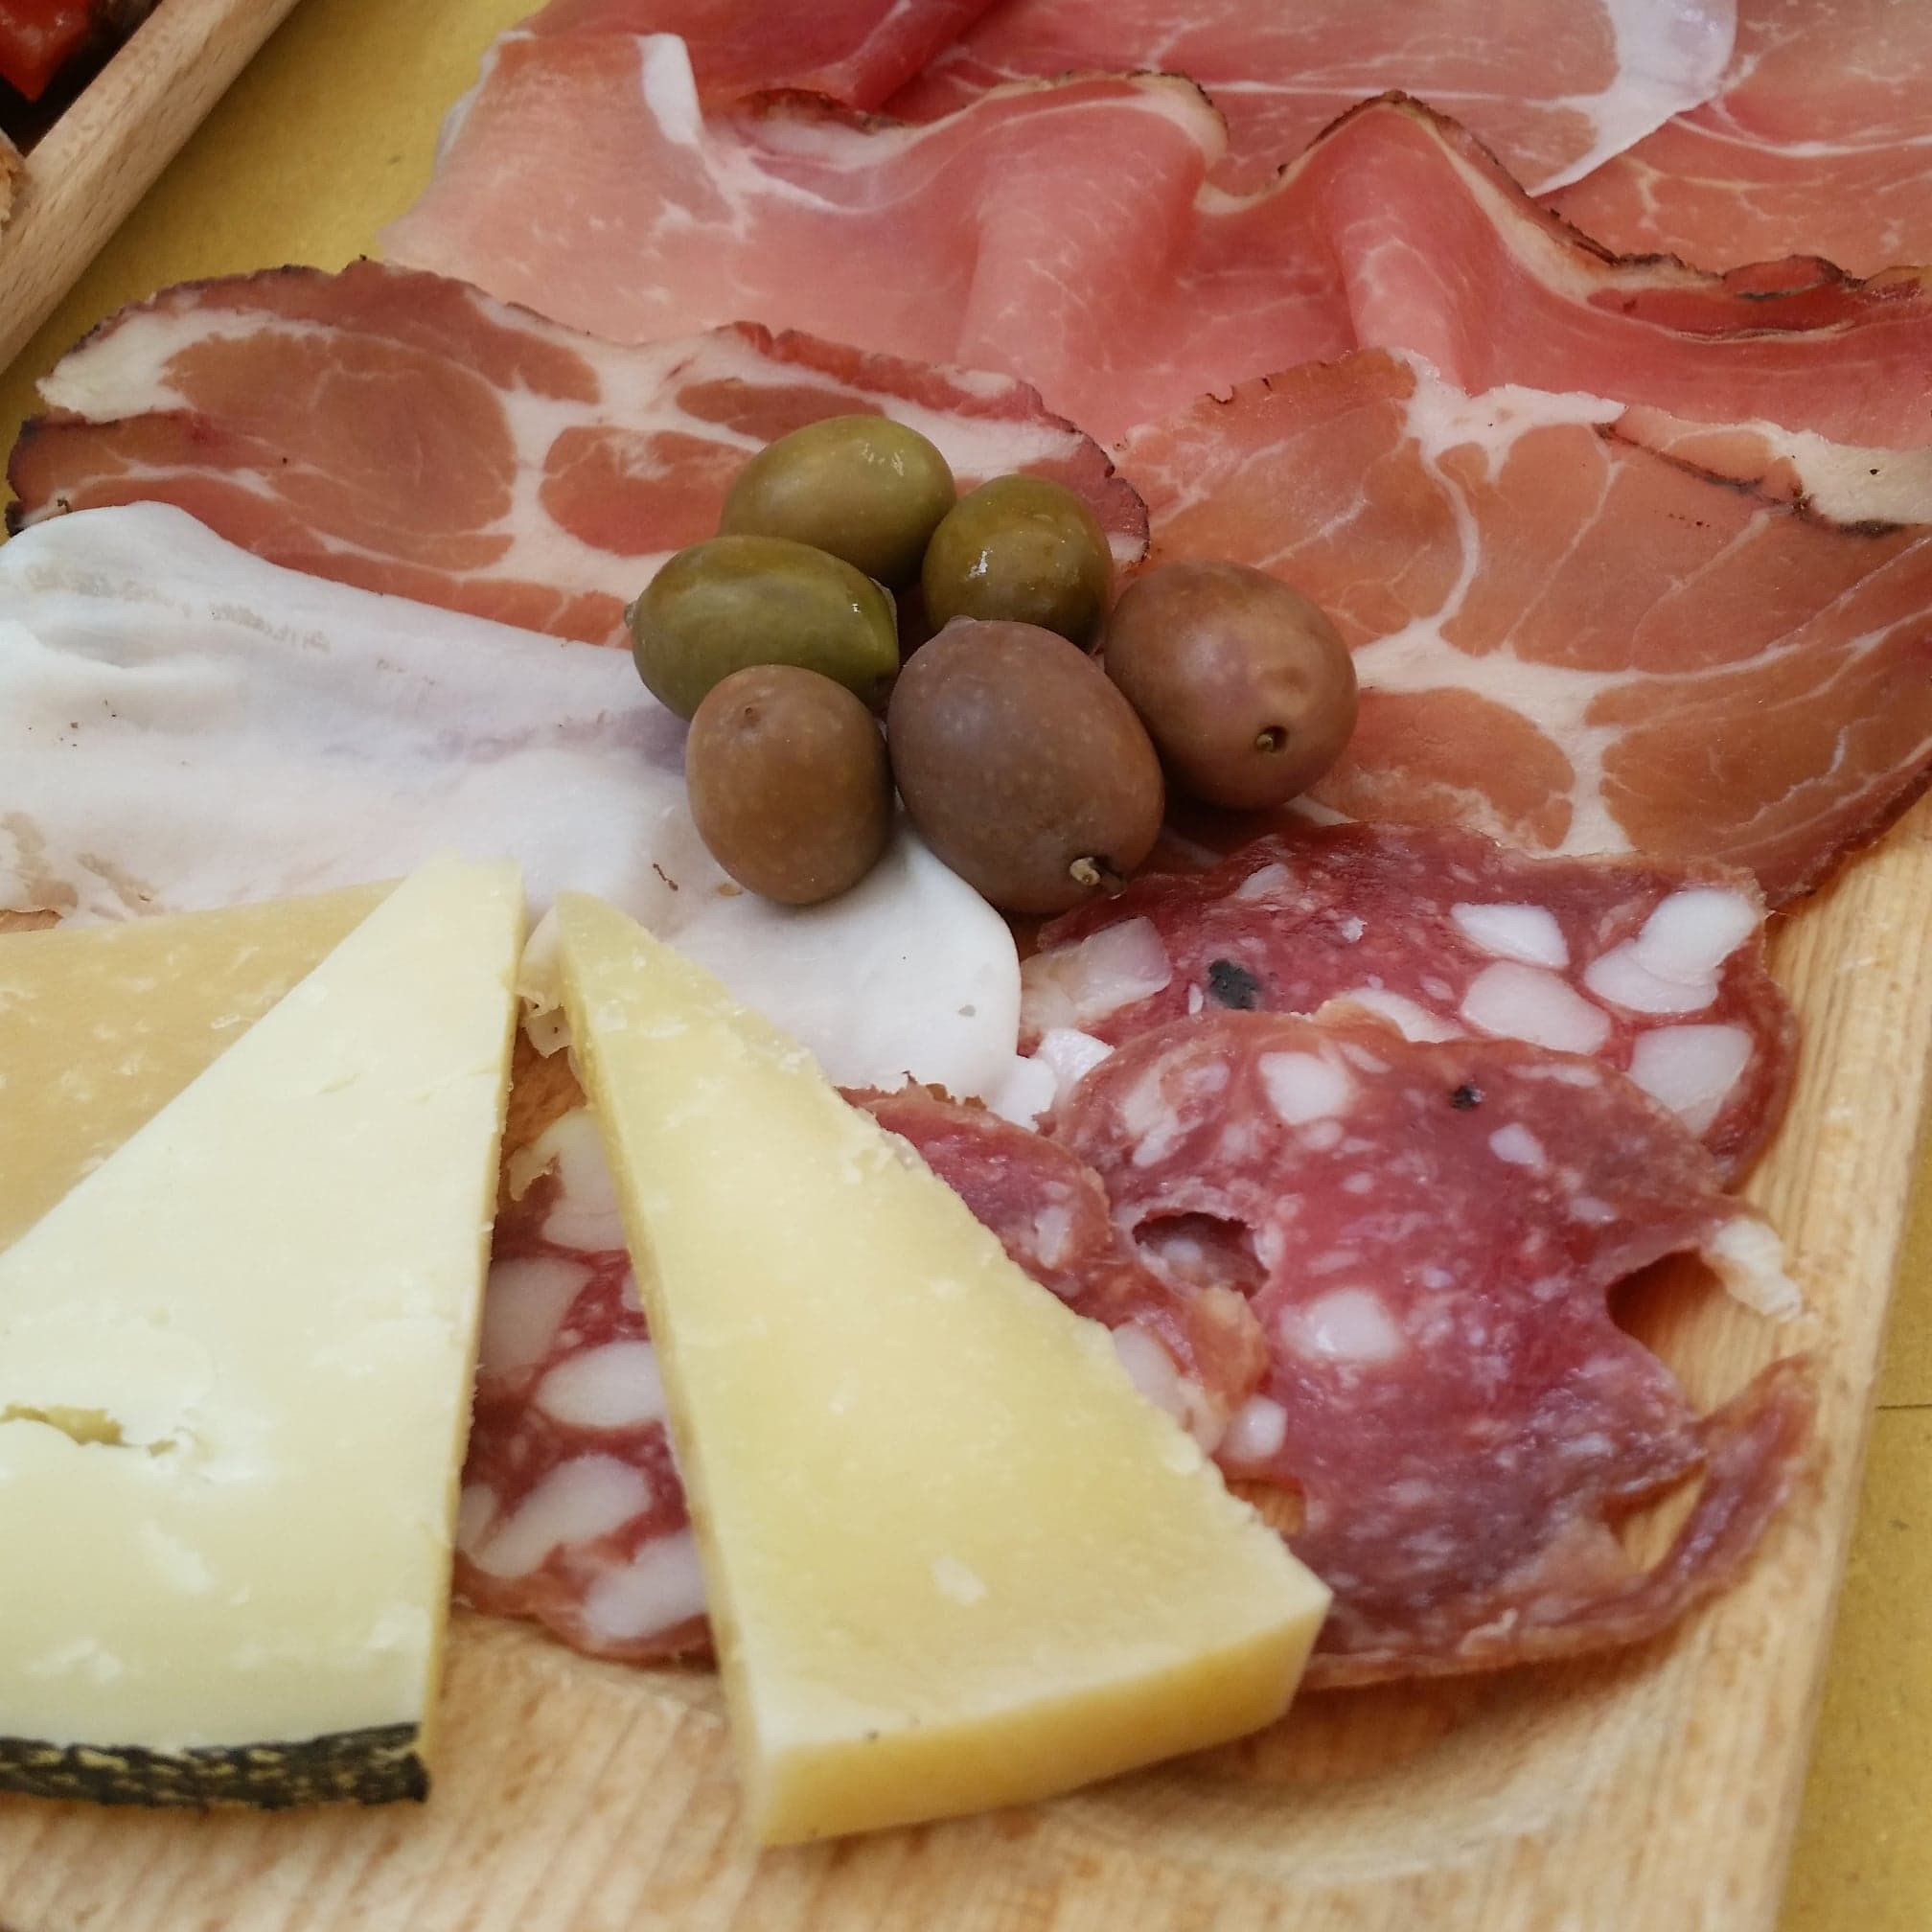 Antipasti - cheese and cold cuts platter